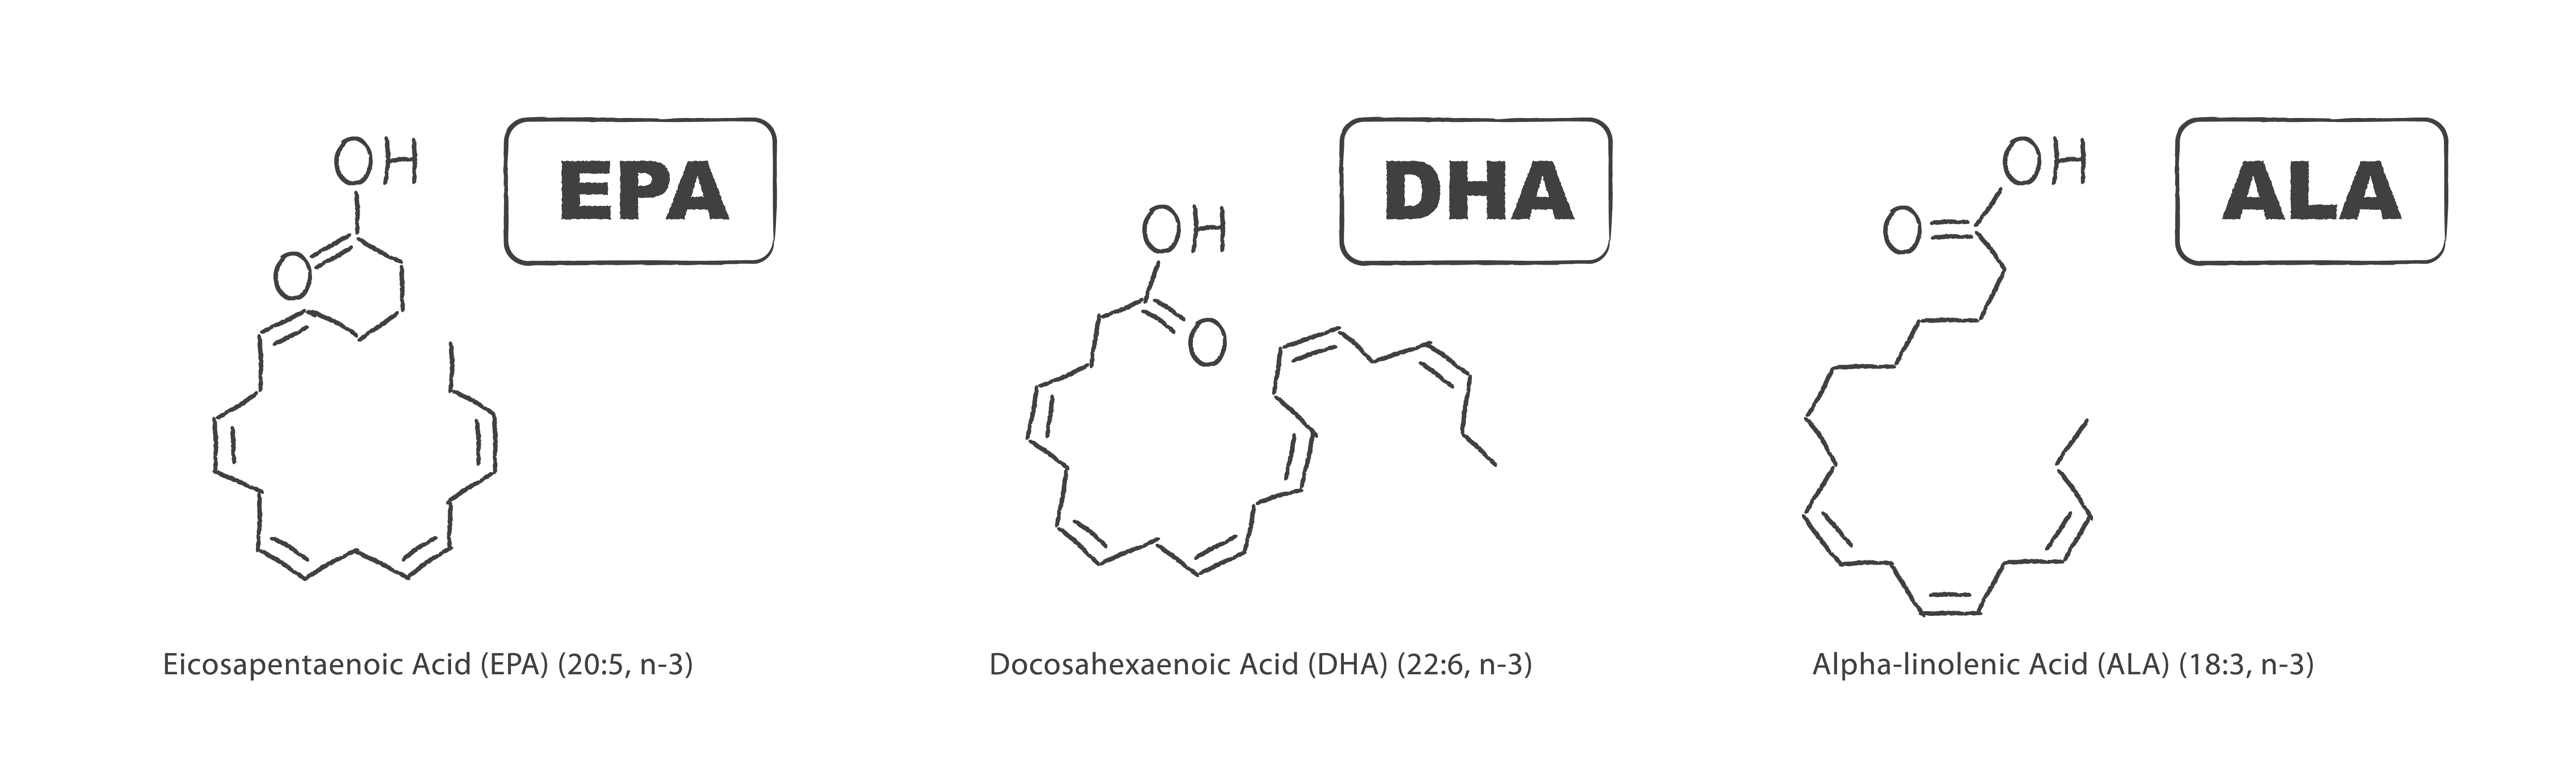 Set of three most important healthy fatty acids - EPA, DHA and ALA